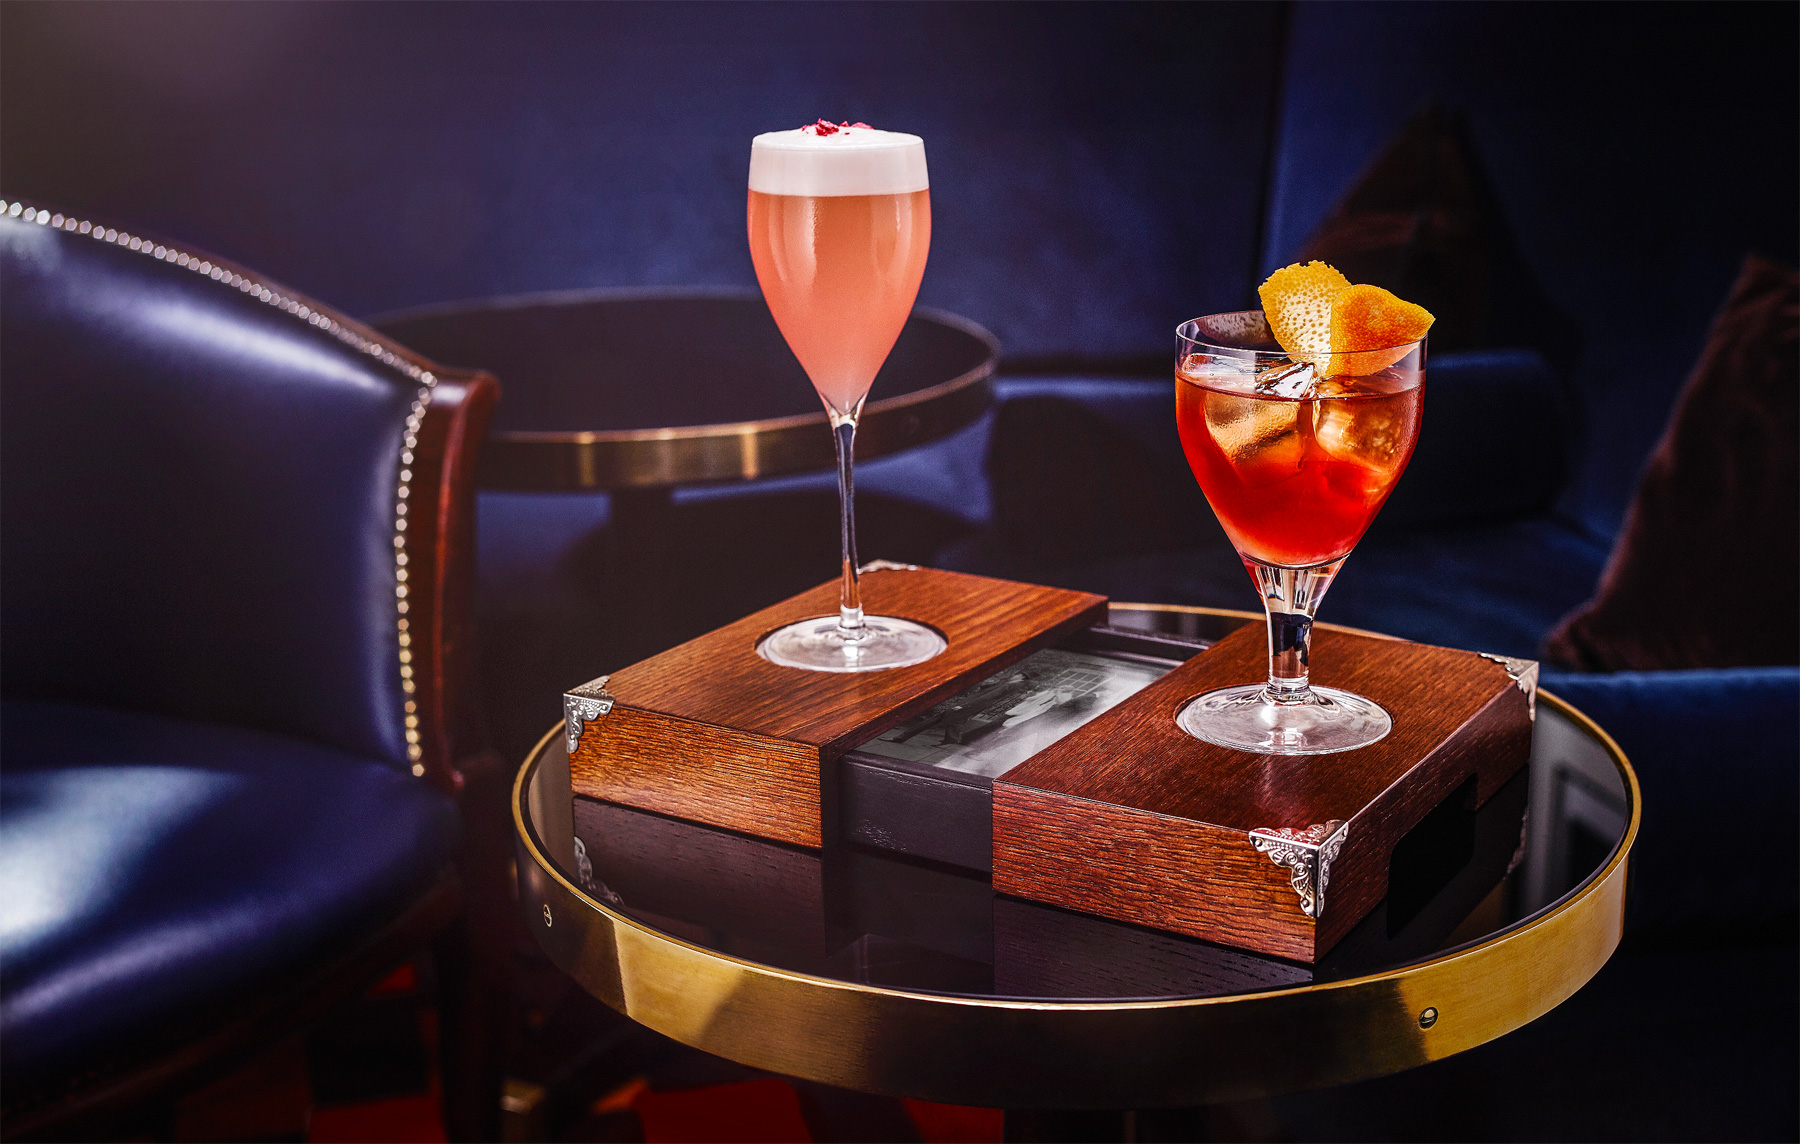 Discovering cocktails with a story to tell at the Savoy